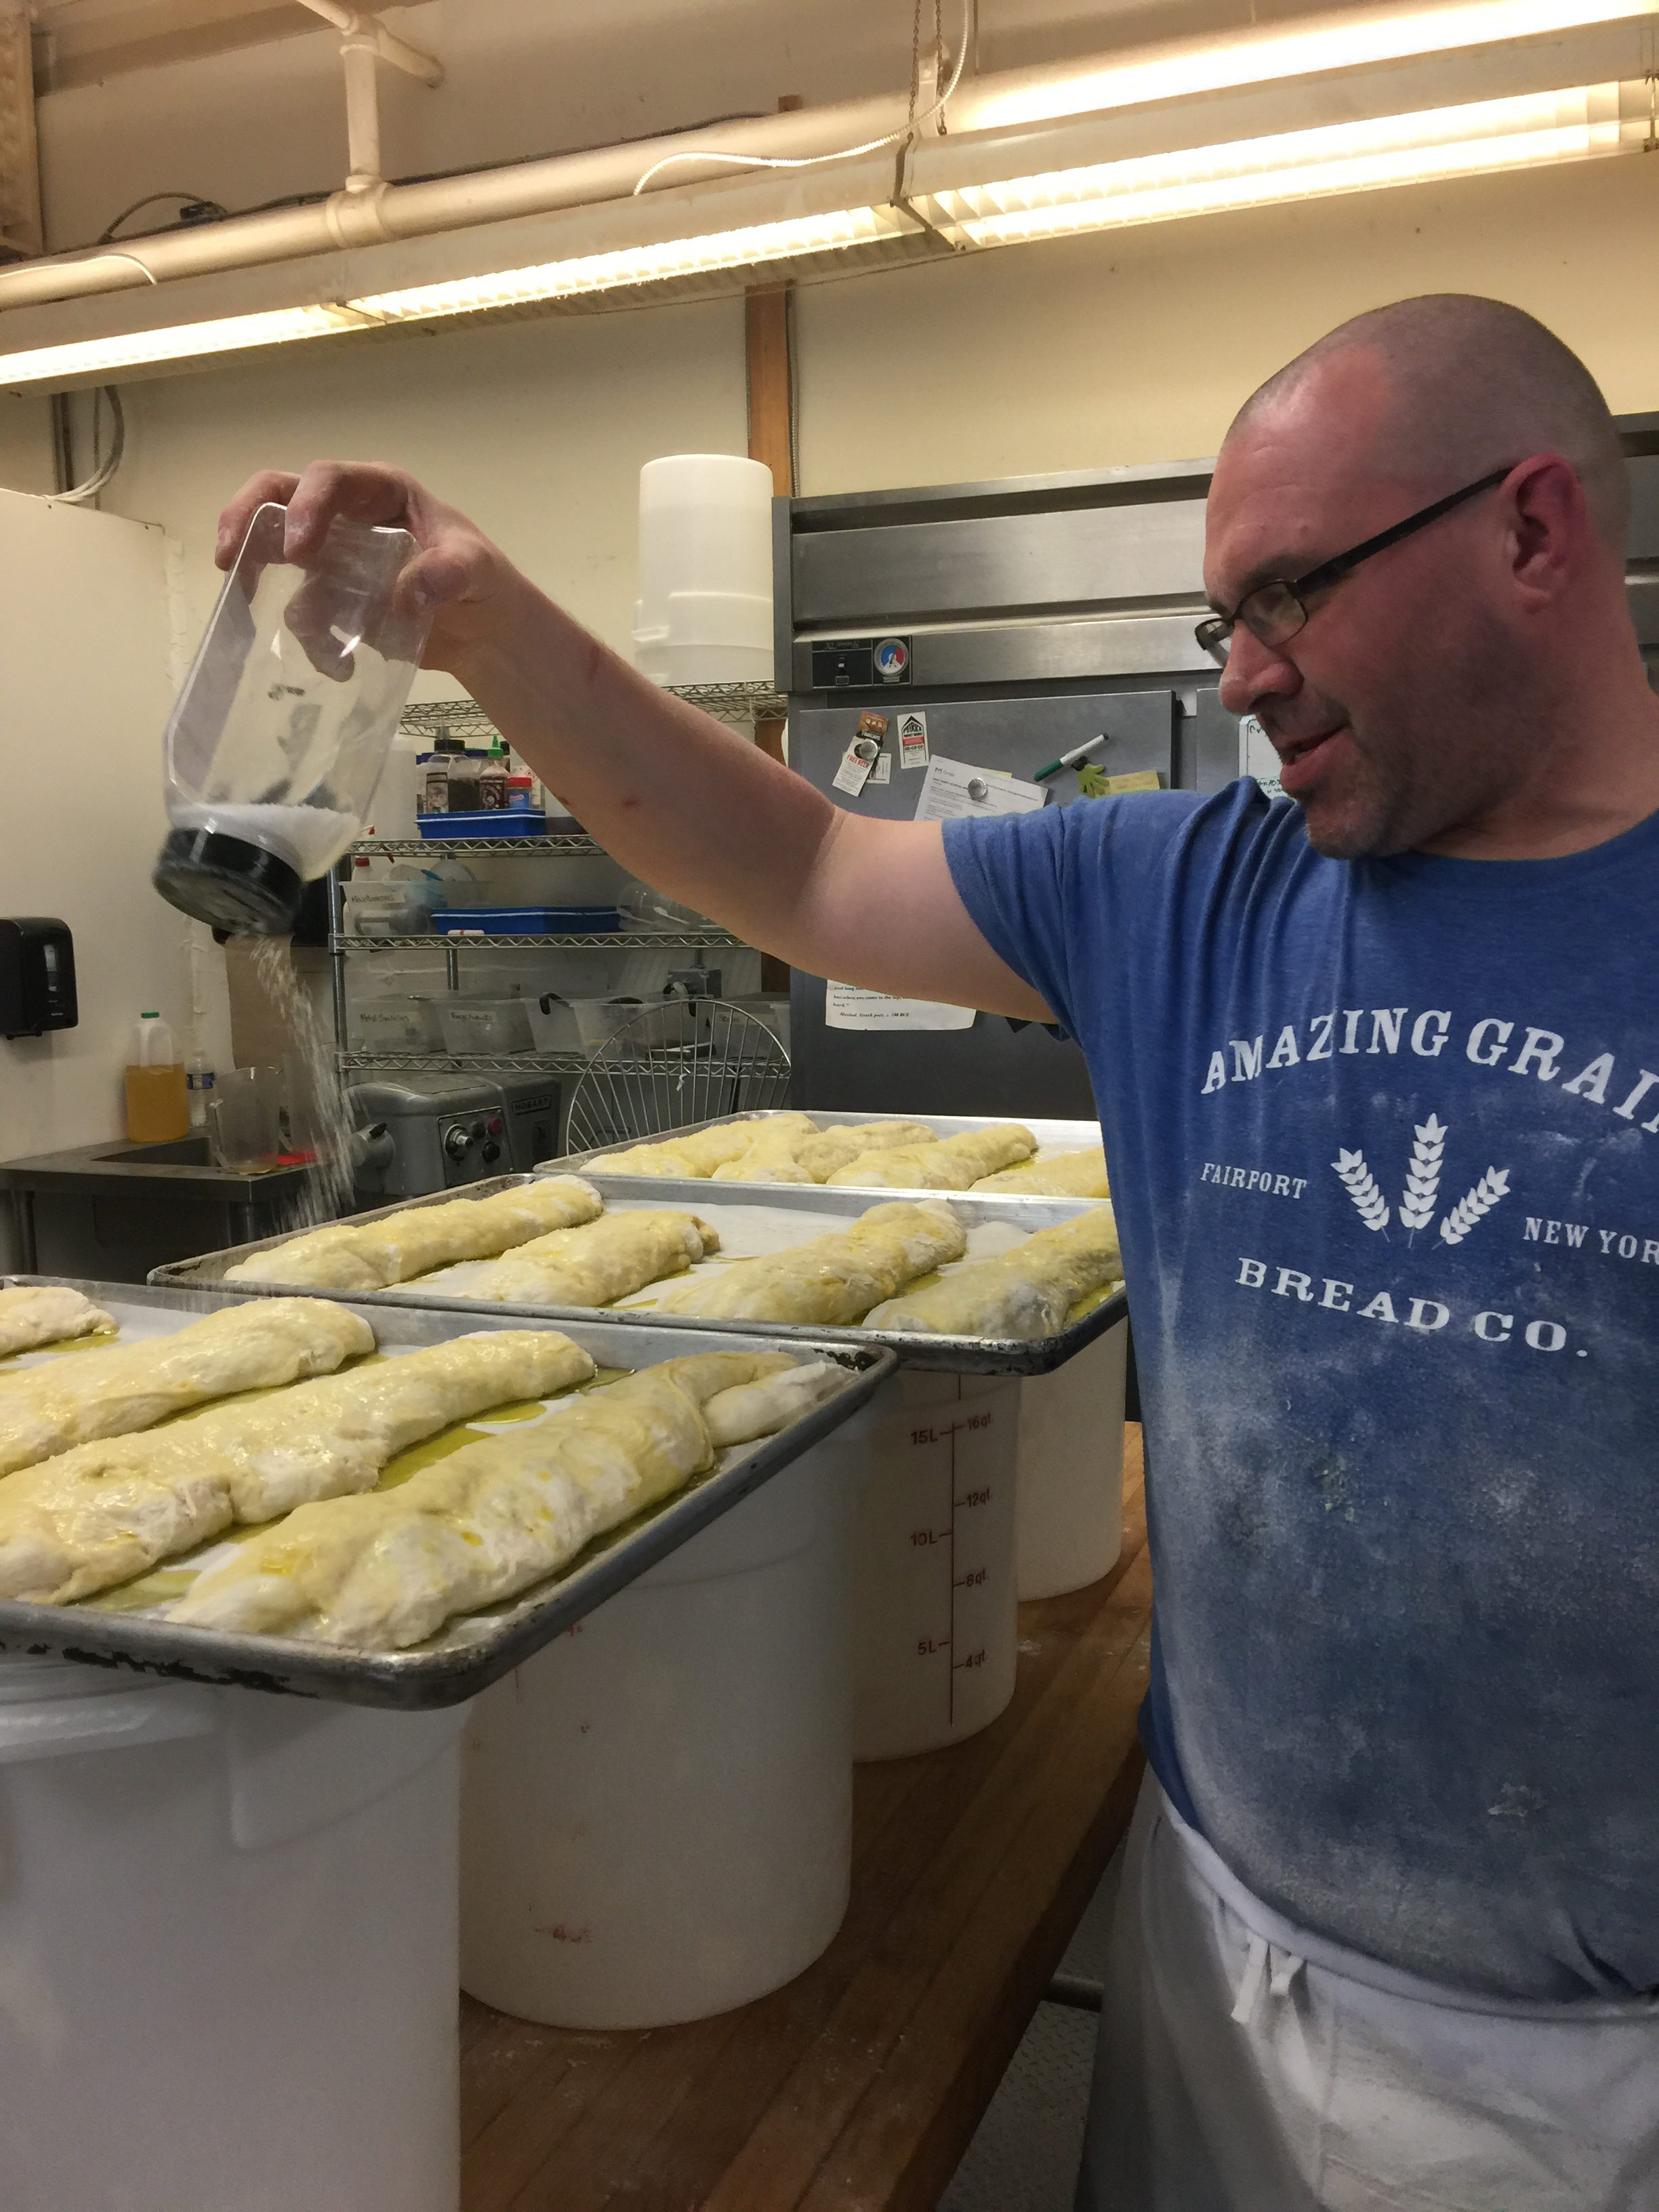 Fairport's Amazin' Amazing Grains Bakery